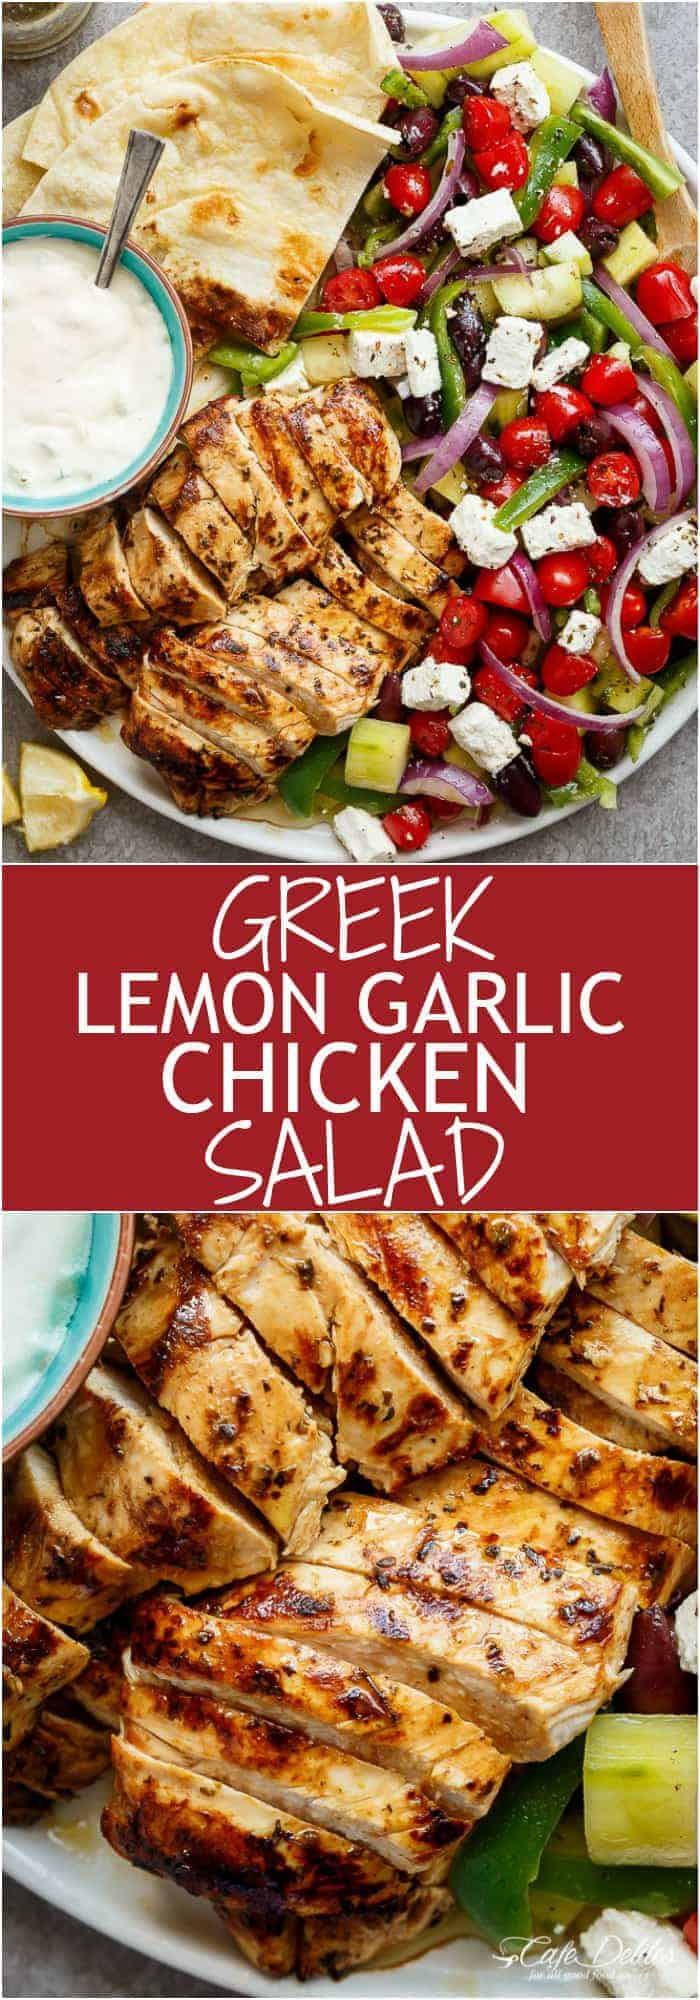 Greek Lemon Garlic Chicken Salad with an incredible dressing that doubles as a marinade! Complete with Tzatziki and homemade flatbreads, it's a winner! | https://cafedelites.com